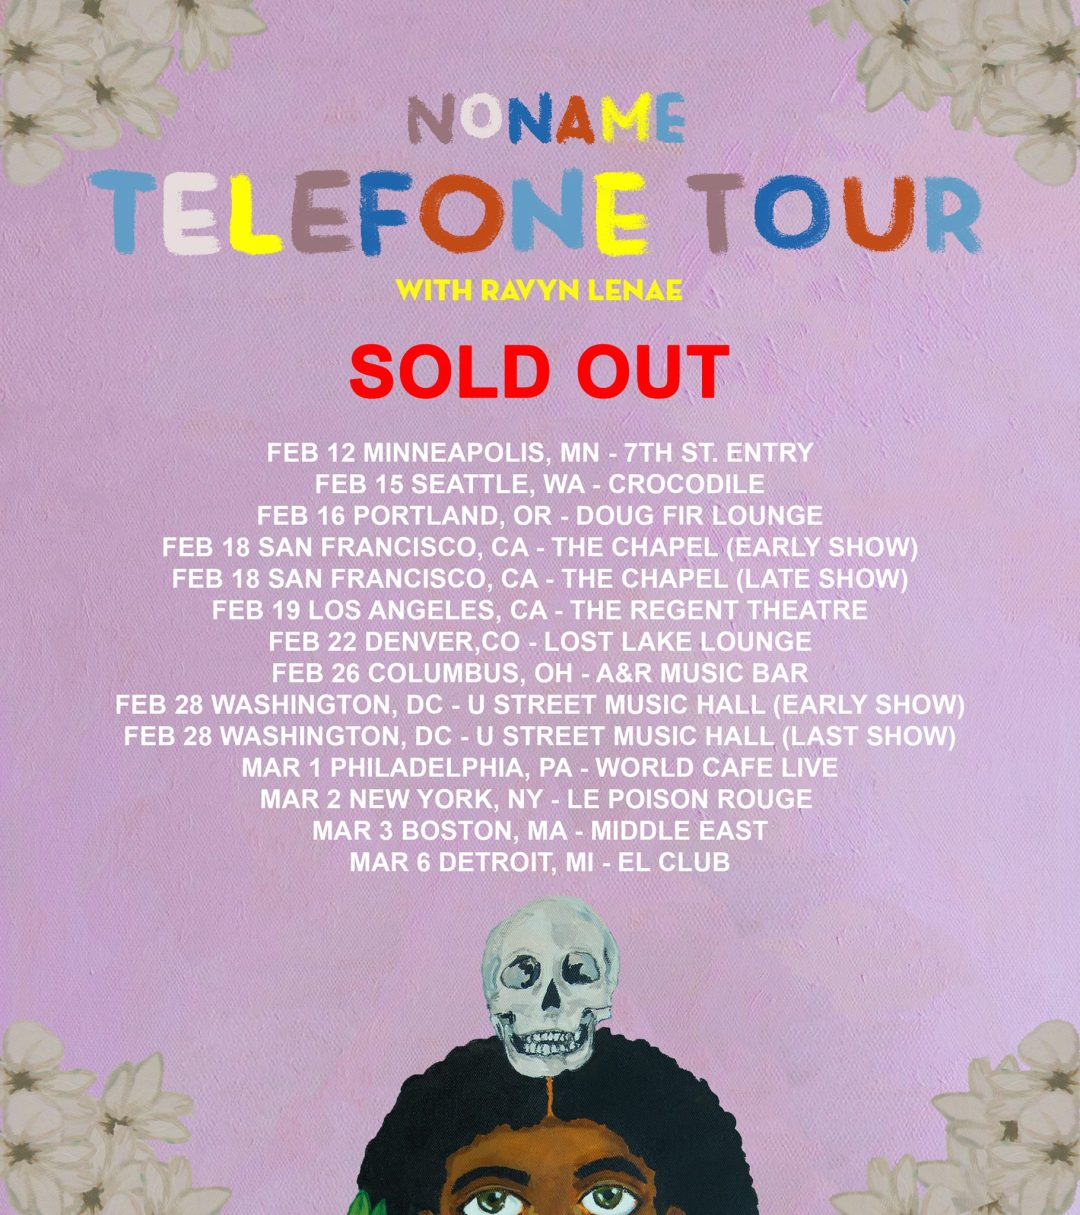 Noname Telefone tour sold out